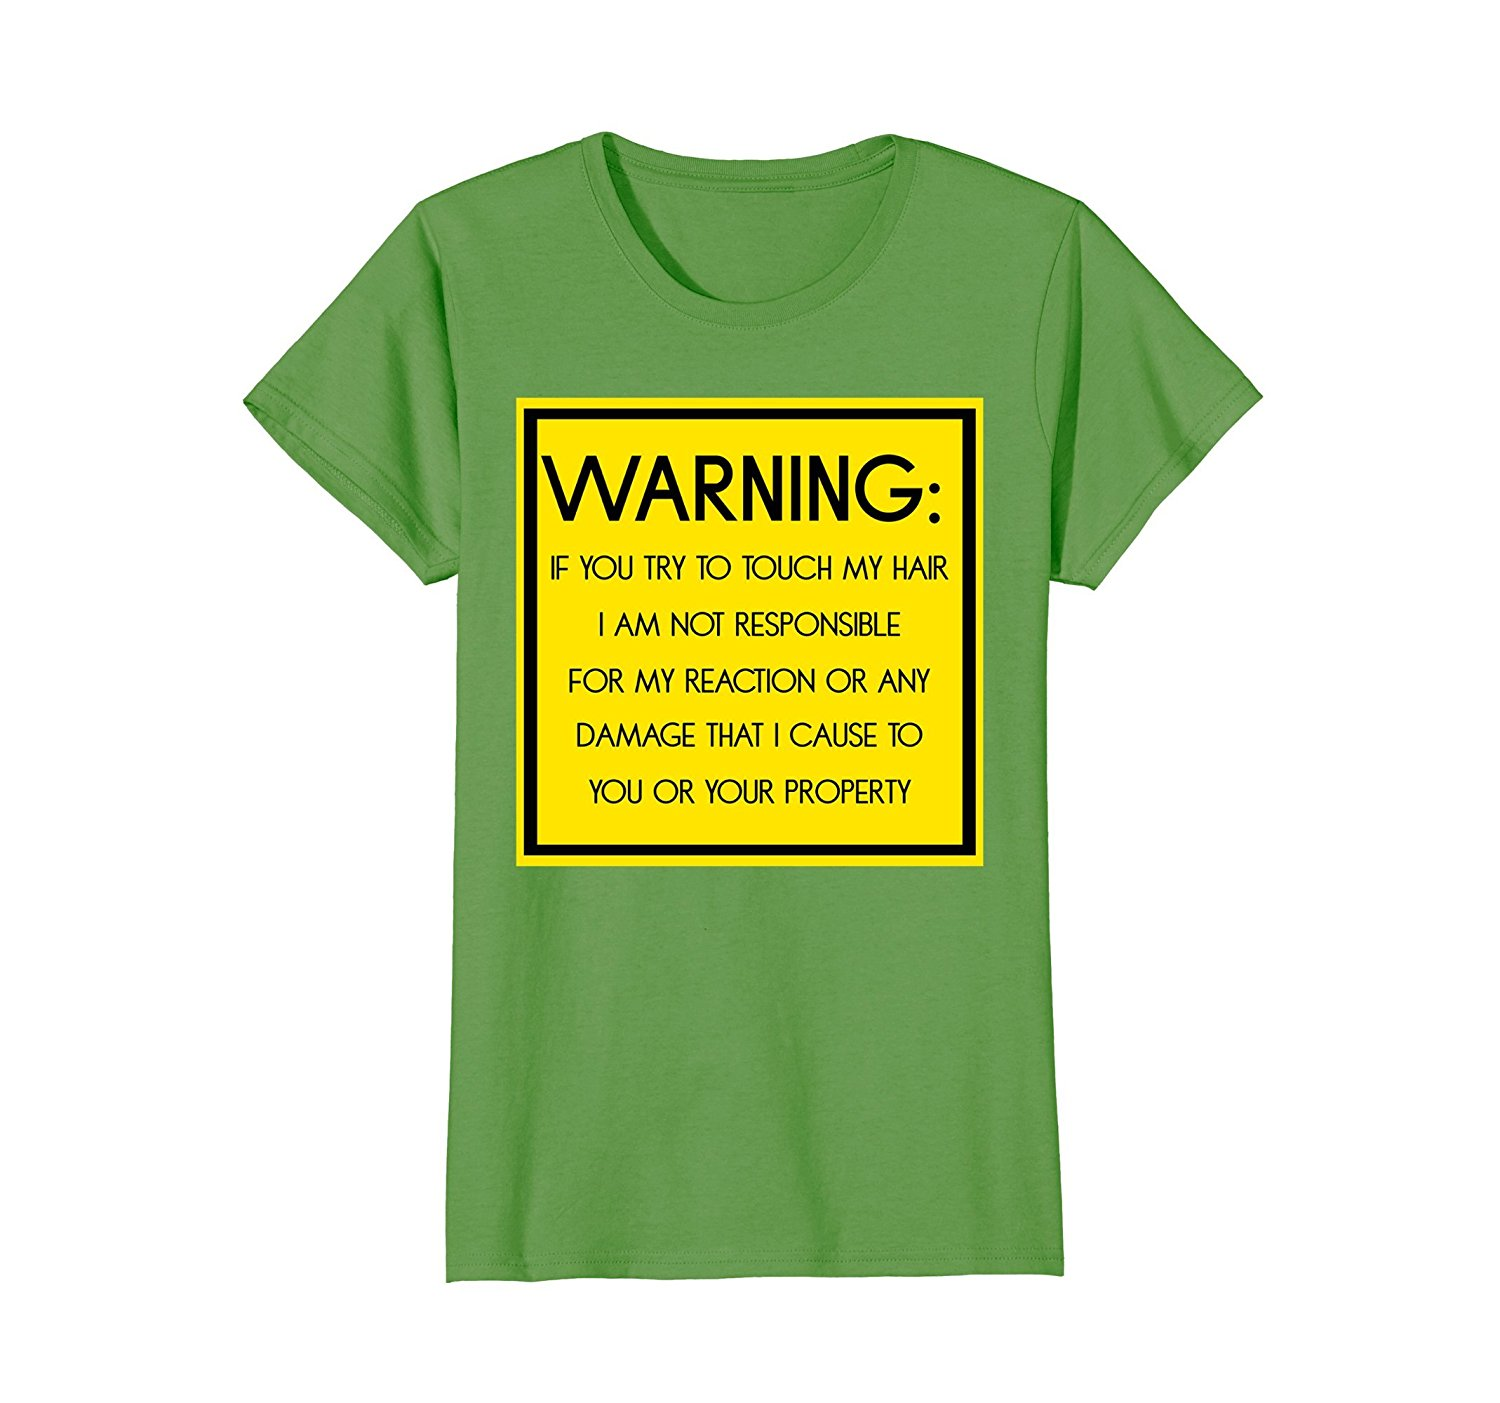 7fa70c578f Get Quotations · Warning Don t Touch My Hair T-shirt for Men